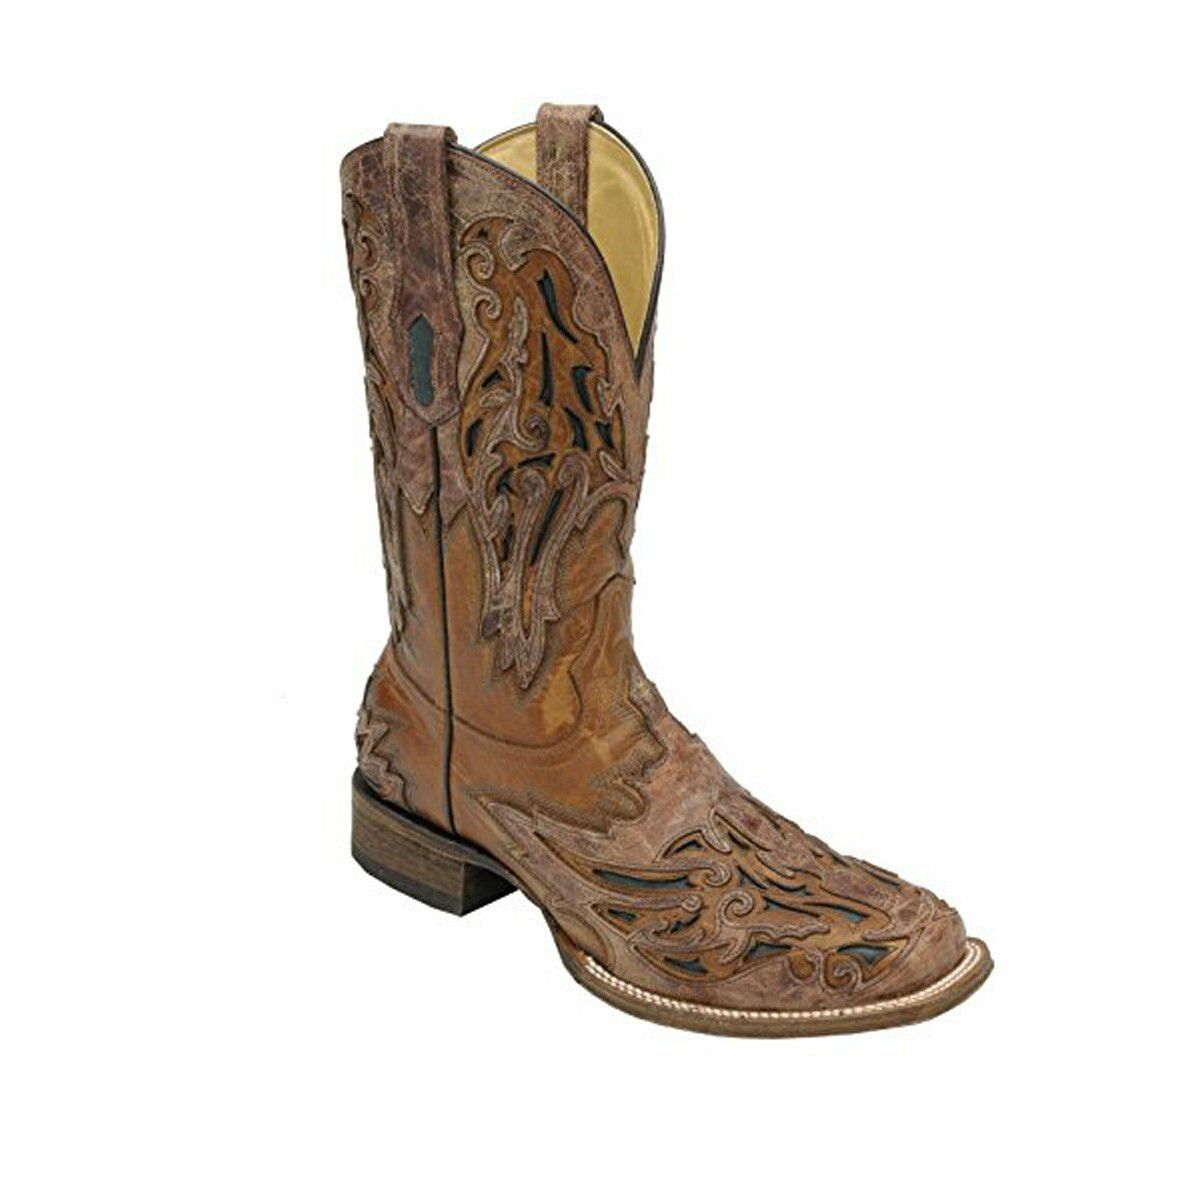 CORRAL Men's Tan/Cognac With Green Inlay Square Toe Cowboy Boots A2827